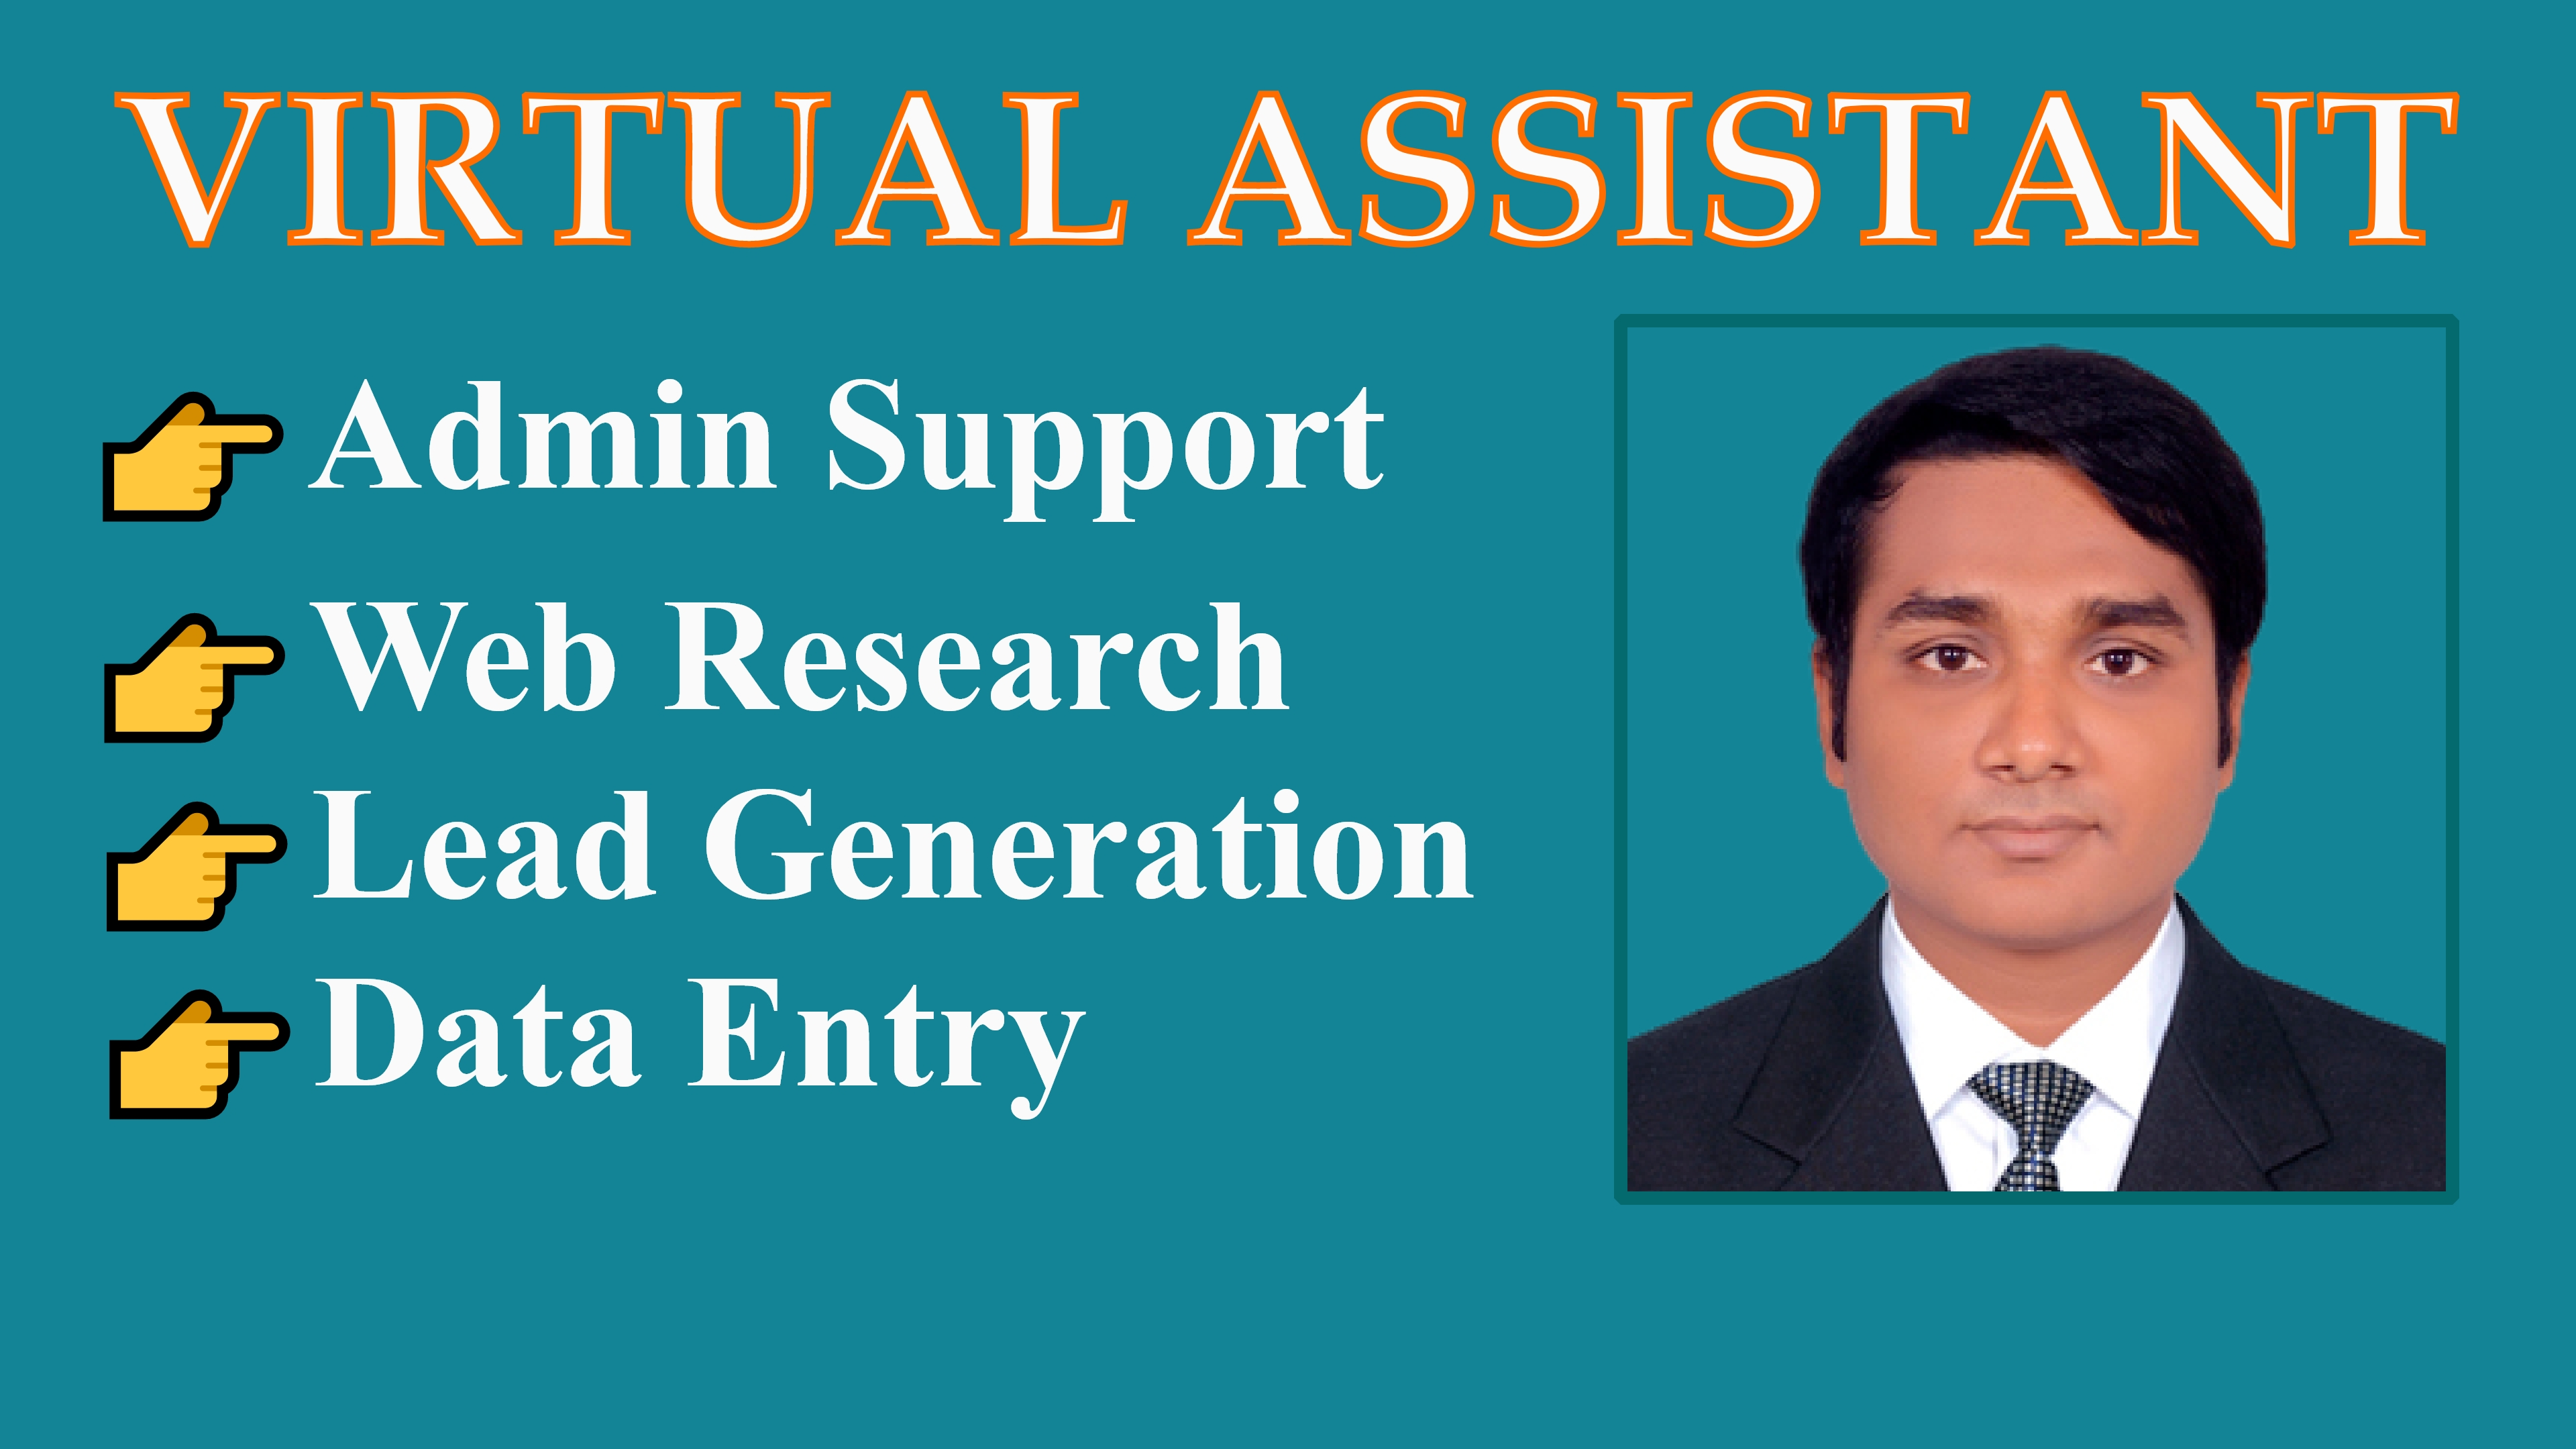 I will be your data entry and web research virtual assistant